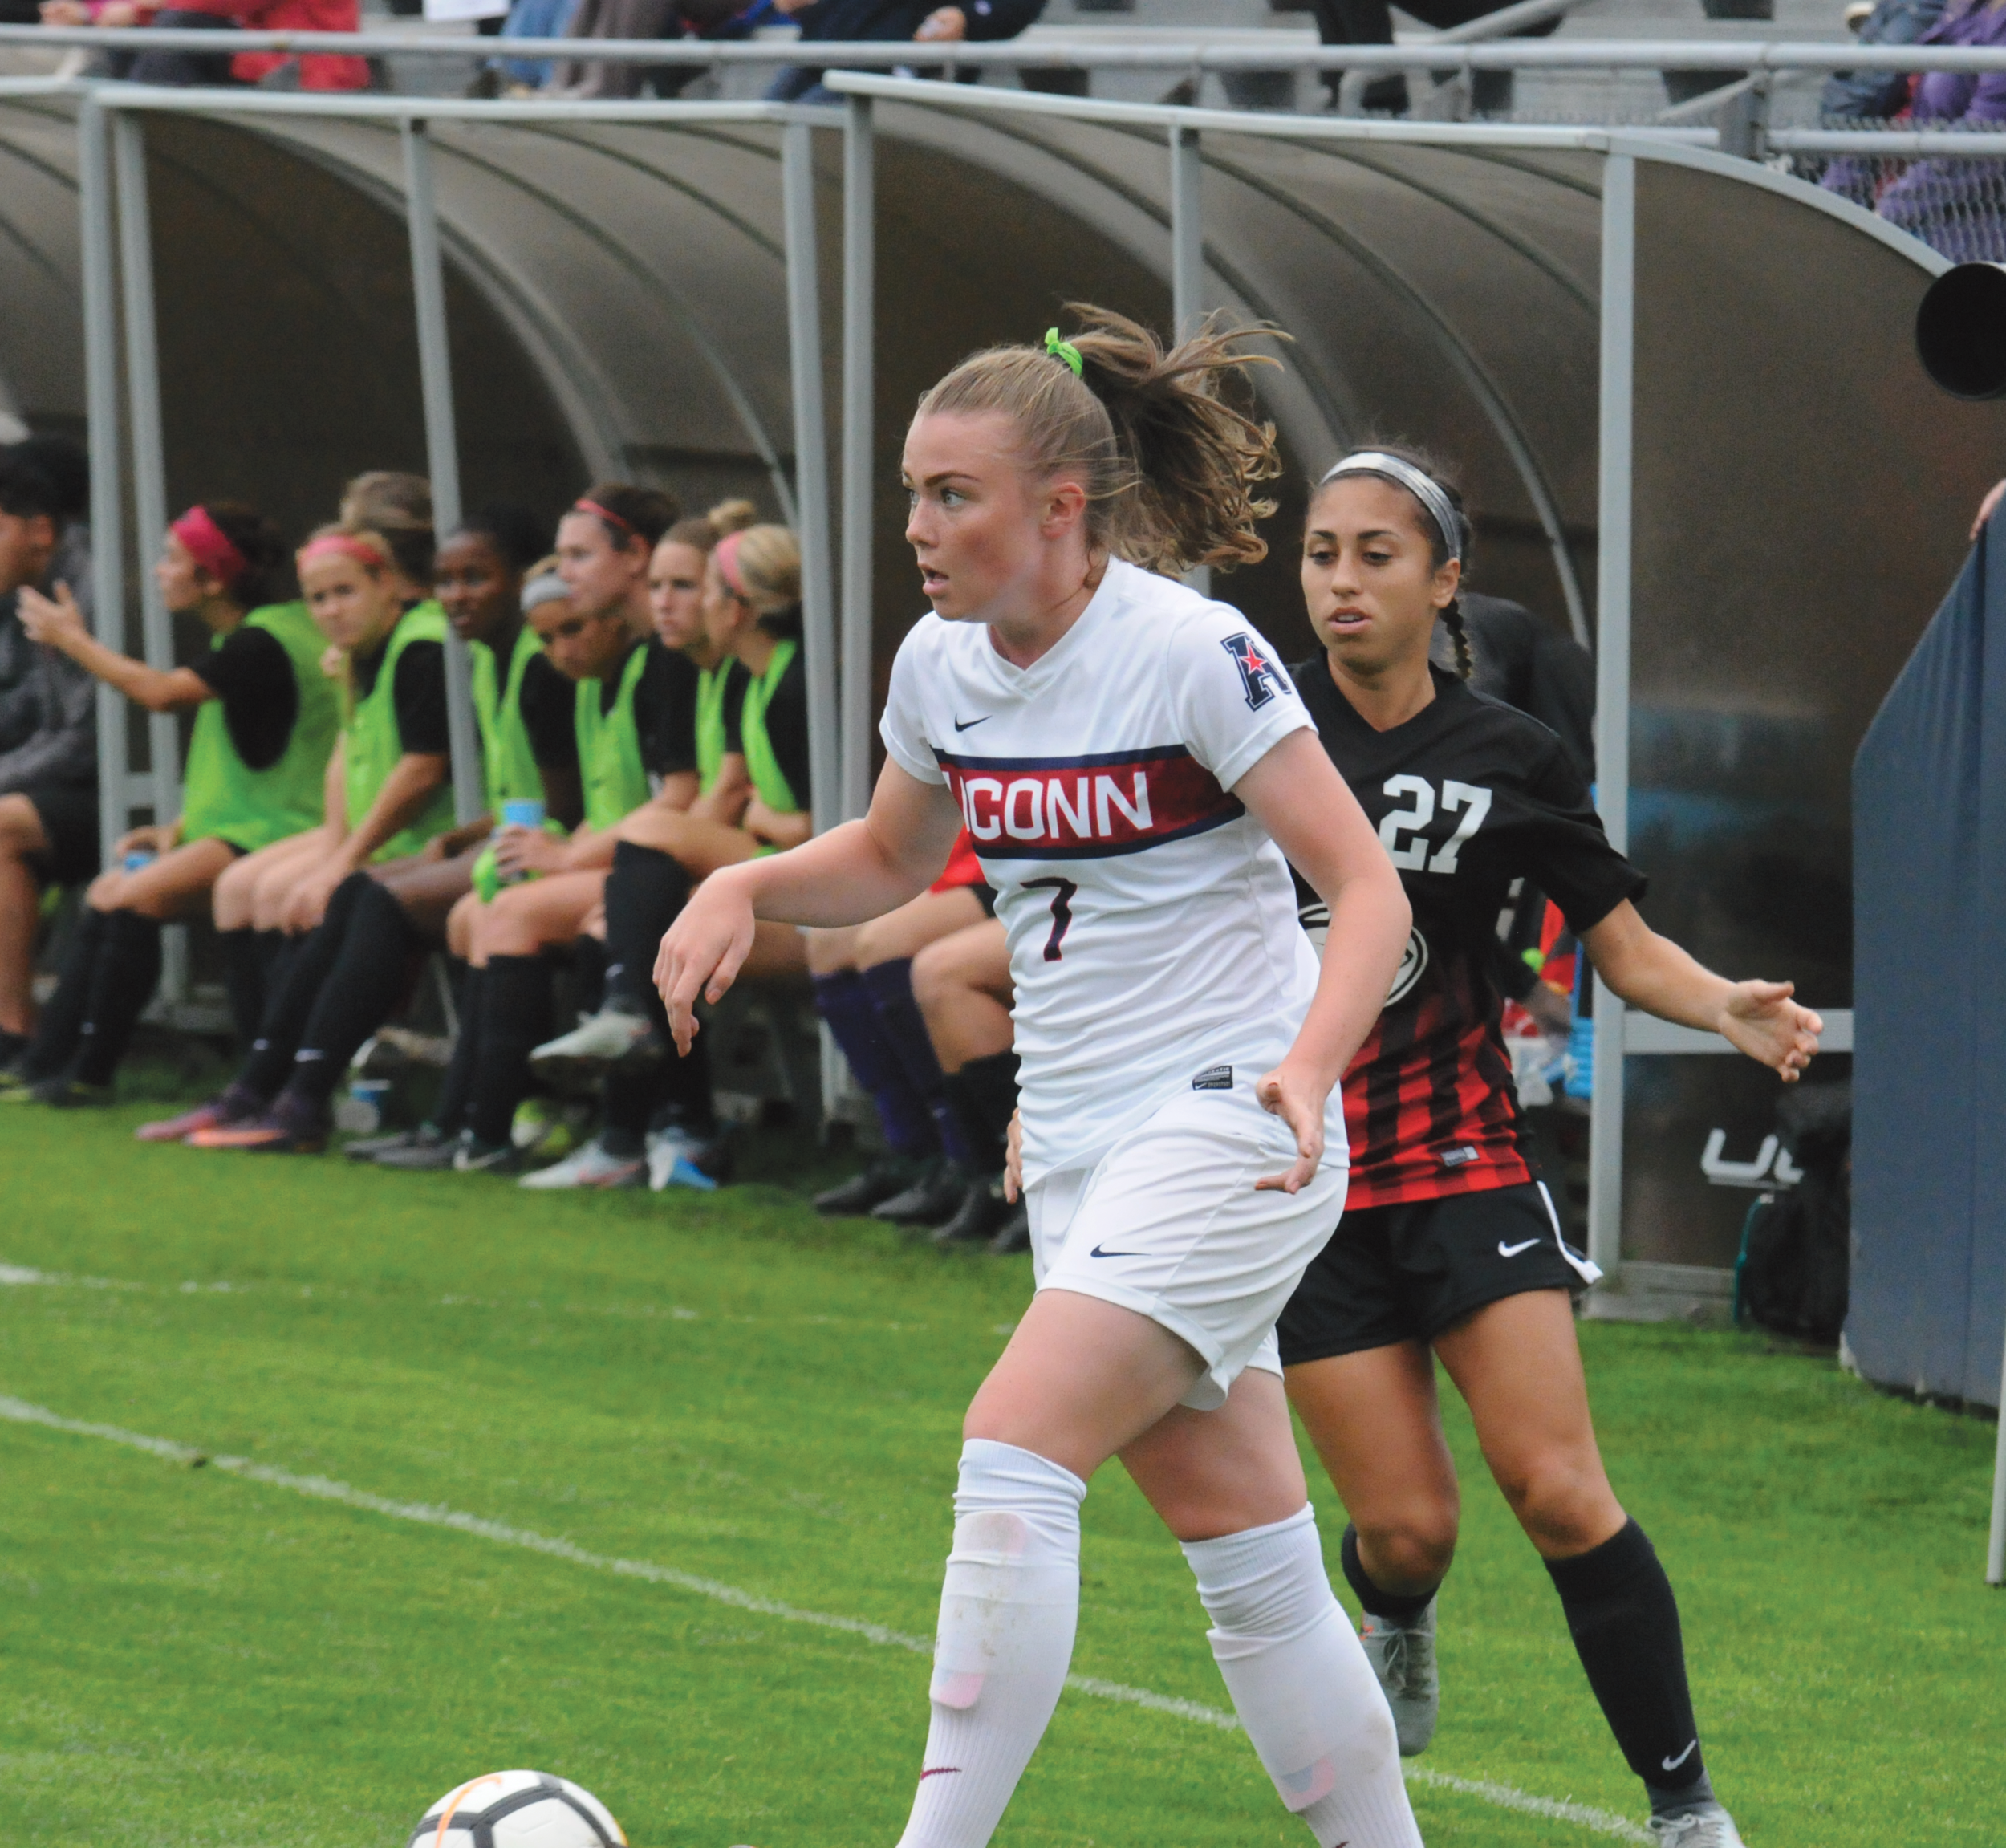 Kess Elmore set up the best opportunity of the day when she sent a cross to Regan Schiappa but it did not result in a goal.  Photo by Matthew Pickett, Staff Photographer/Daily Campus